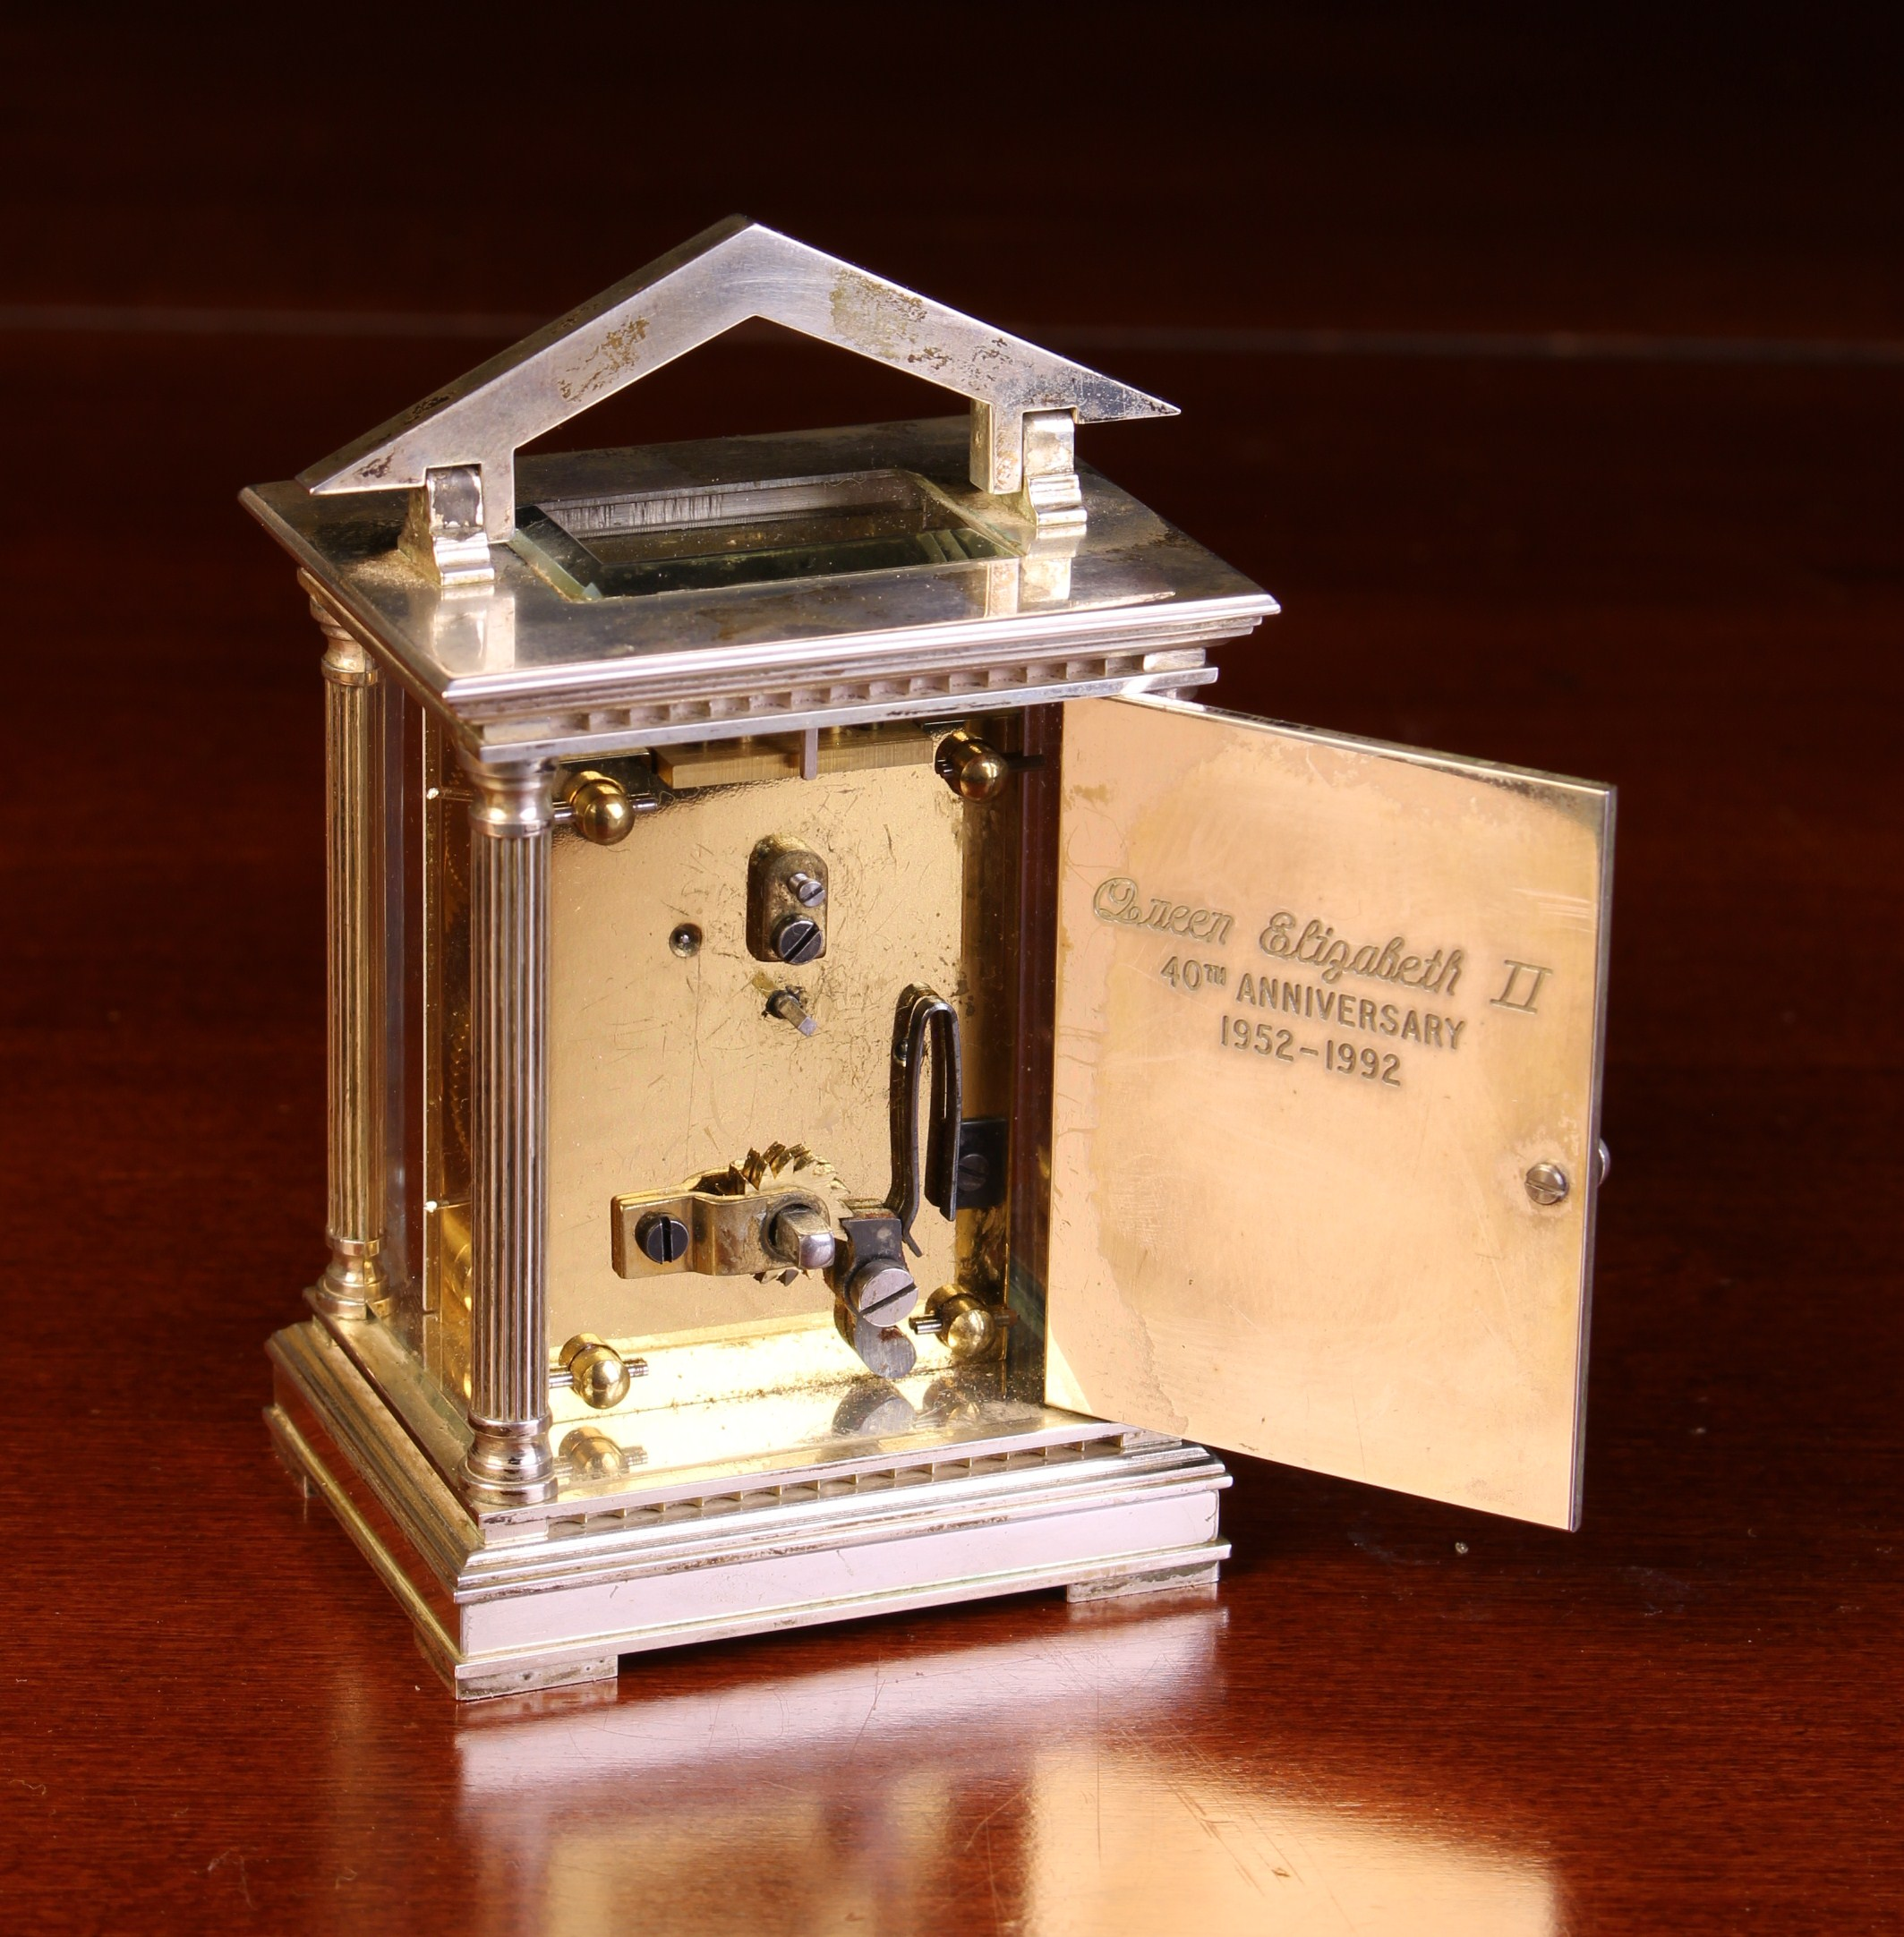 A Miniature Limited Edition Silver Carriage Clock by Chas. - Image 4 of 4